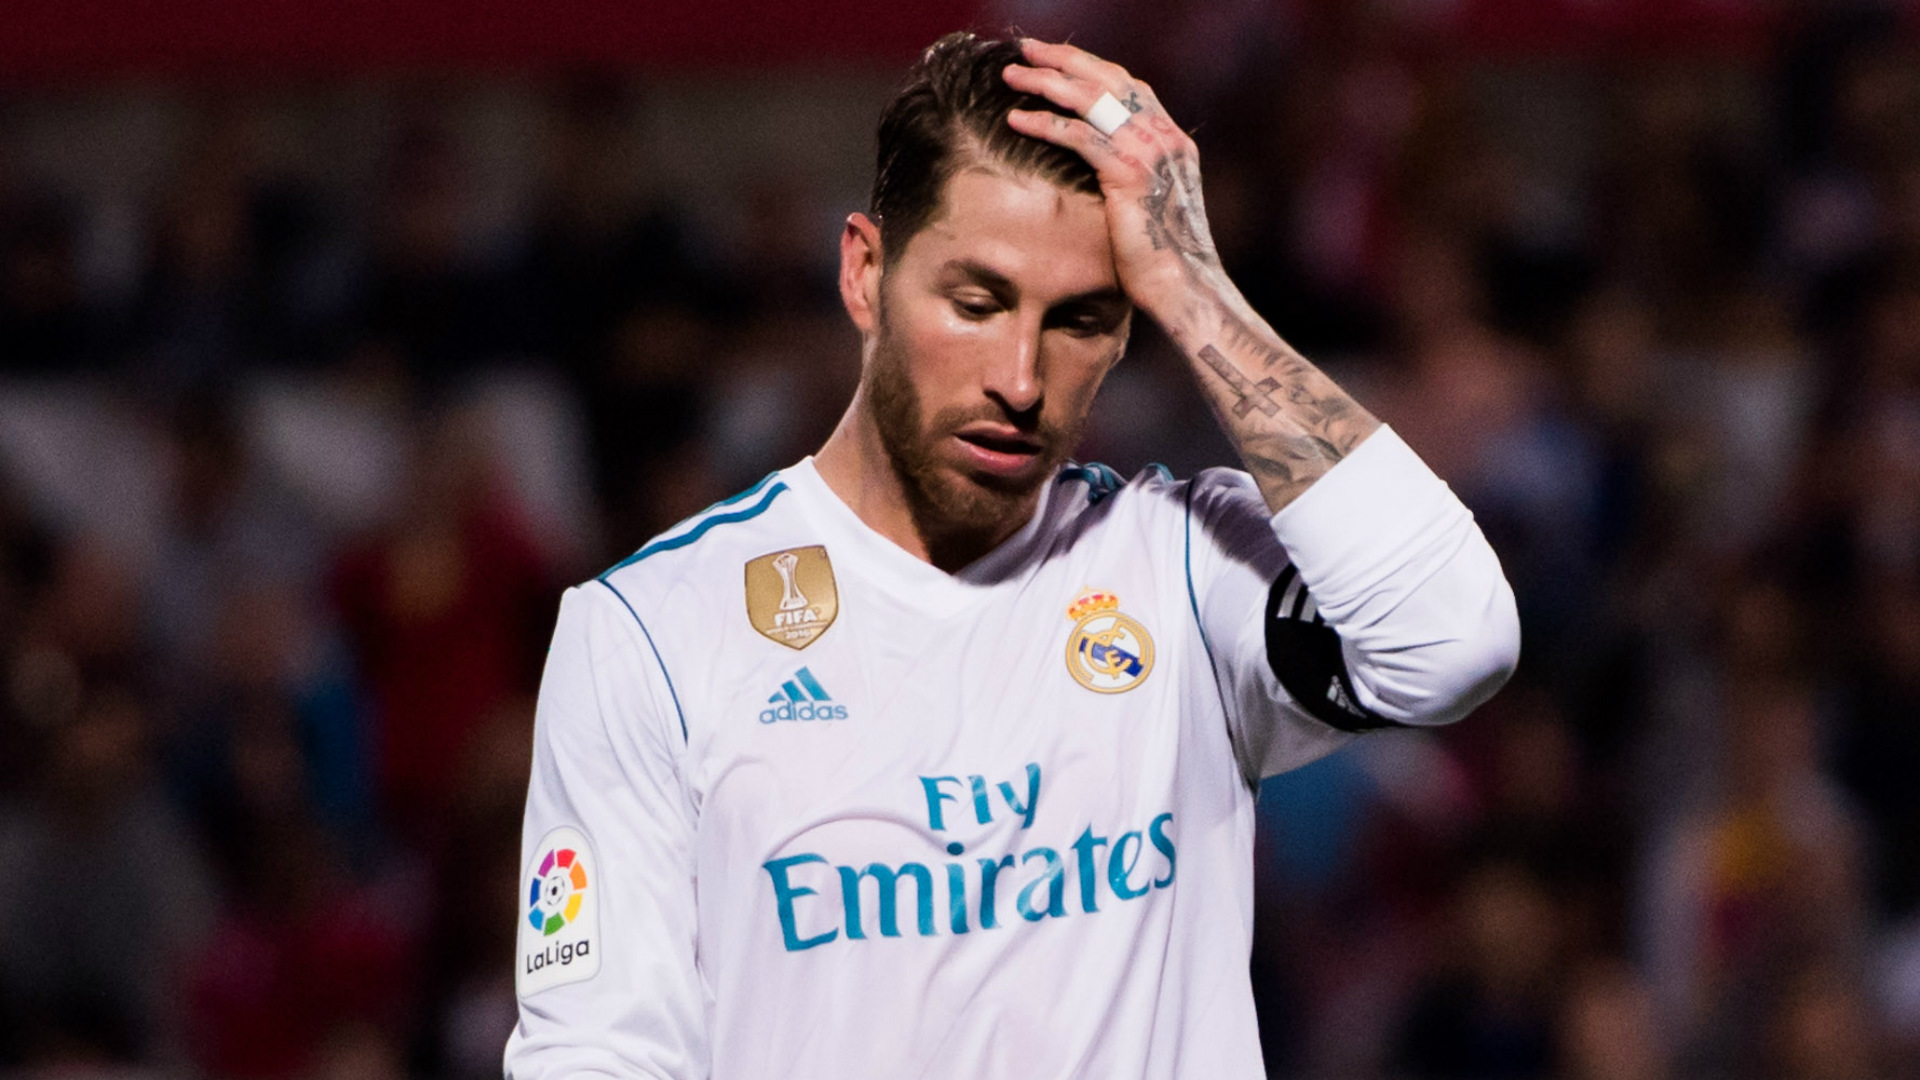 Real Madrid Team News: Injuries, suspensions and line-up vs Athletic Club